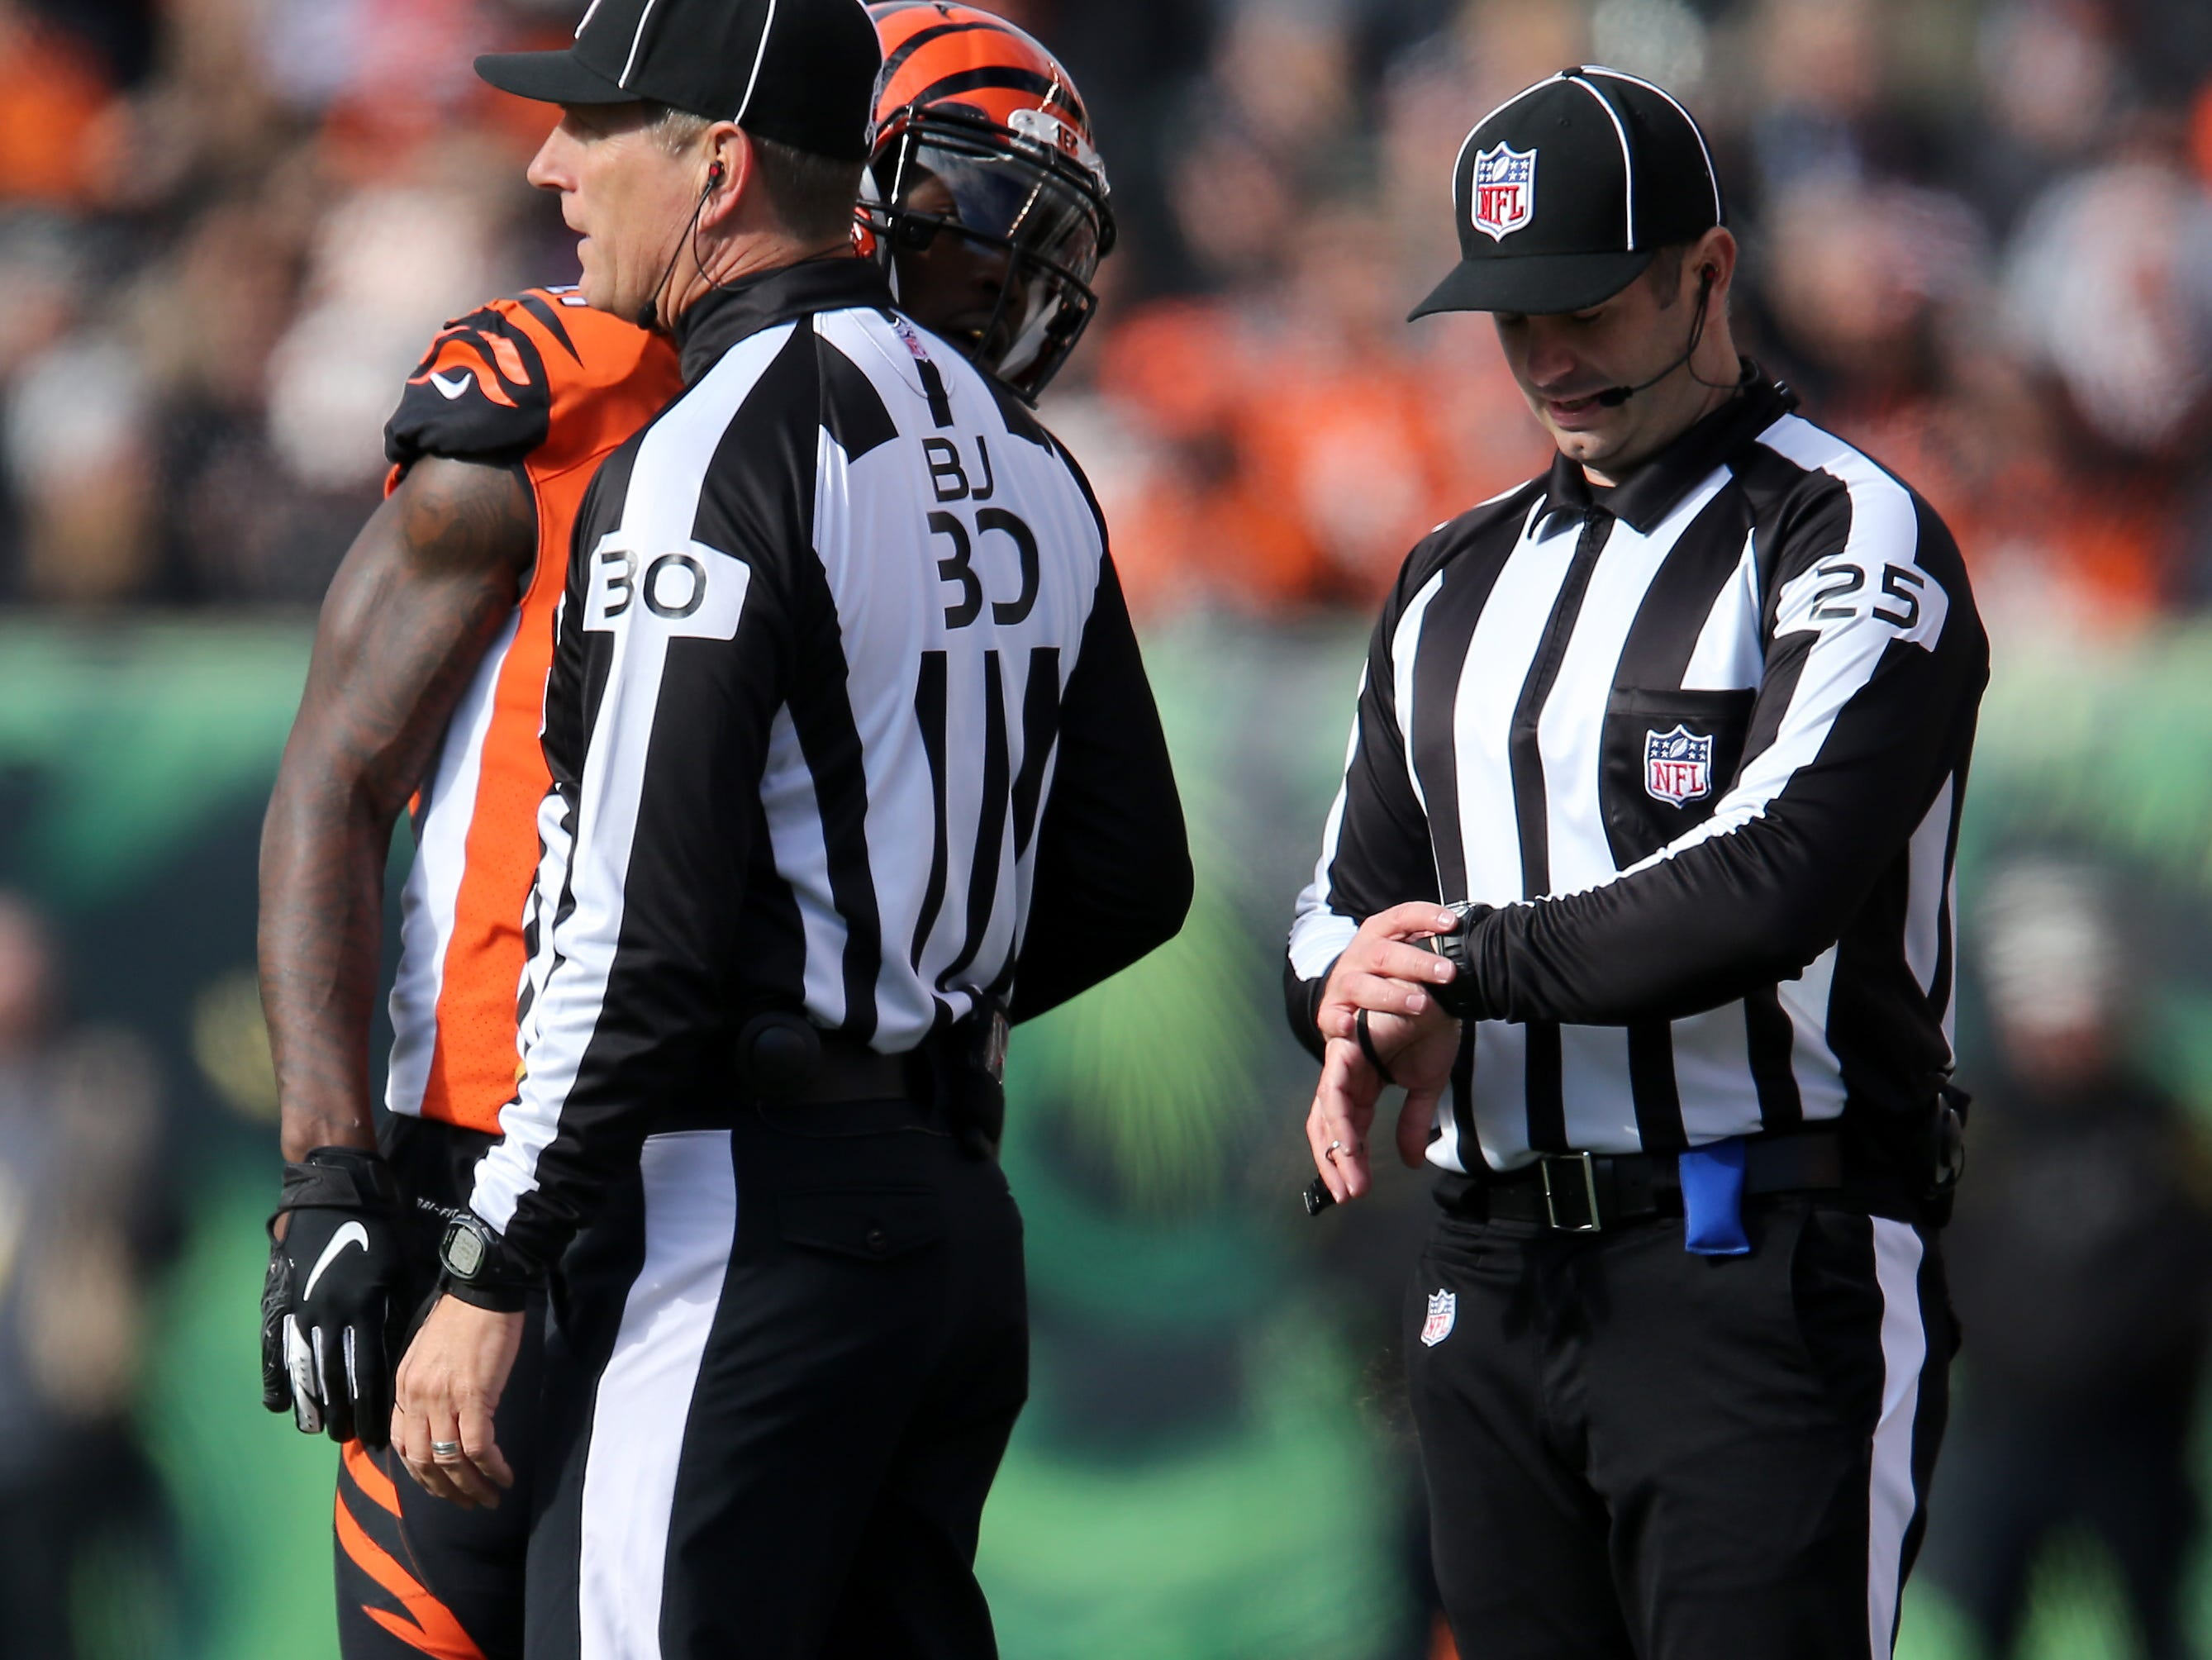 Cincinnati Bengals cornerback Dre Kirkpatrick (27) argues with the officials after being called for pass interference in the second quarter of a Week 10 NFL game between the New Orleans Saints and the Cincinnati Bengals, Sunday, Nov. 11, 2018, at Paul Brown Stadium in Cincinnati.